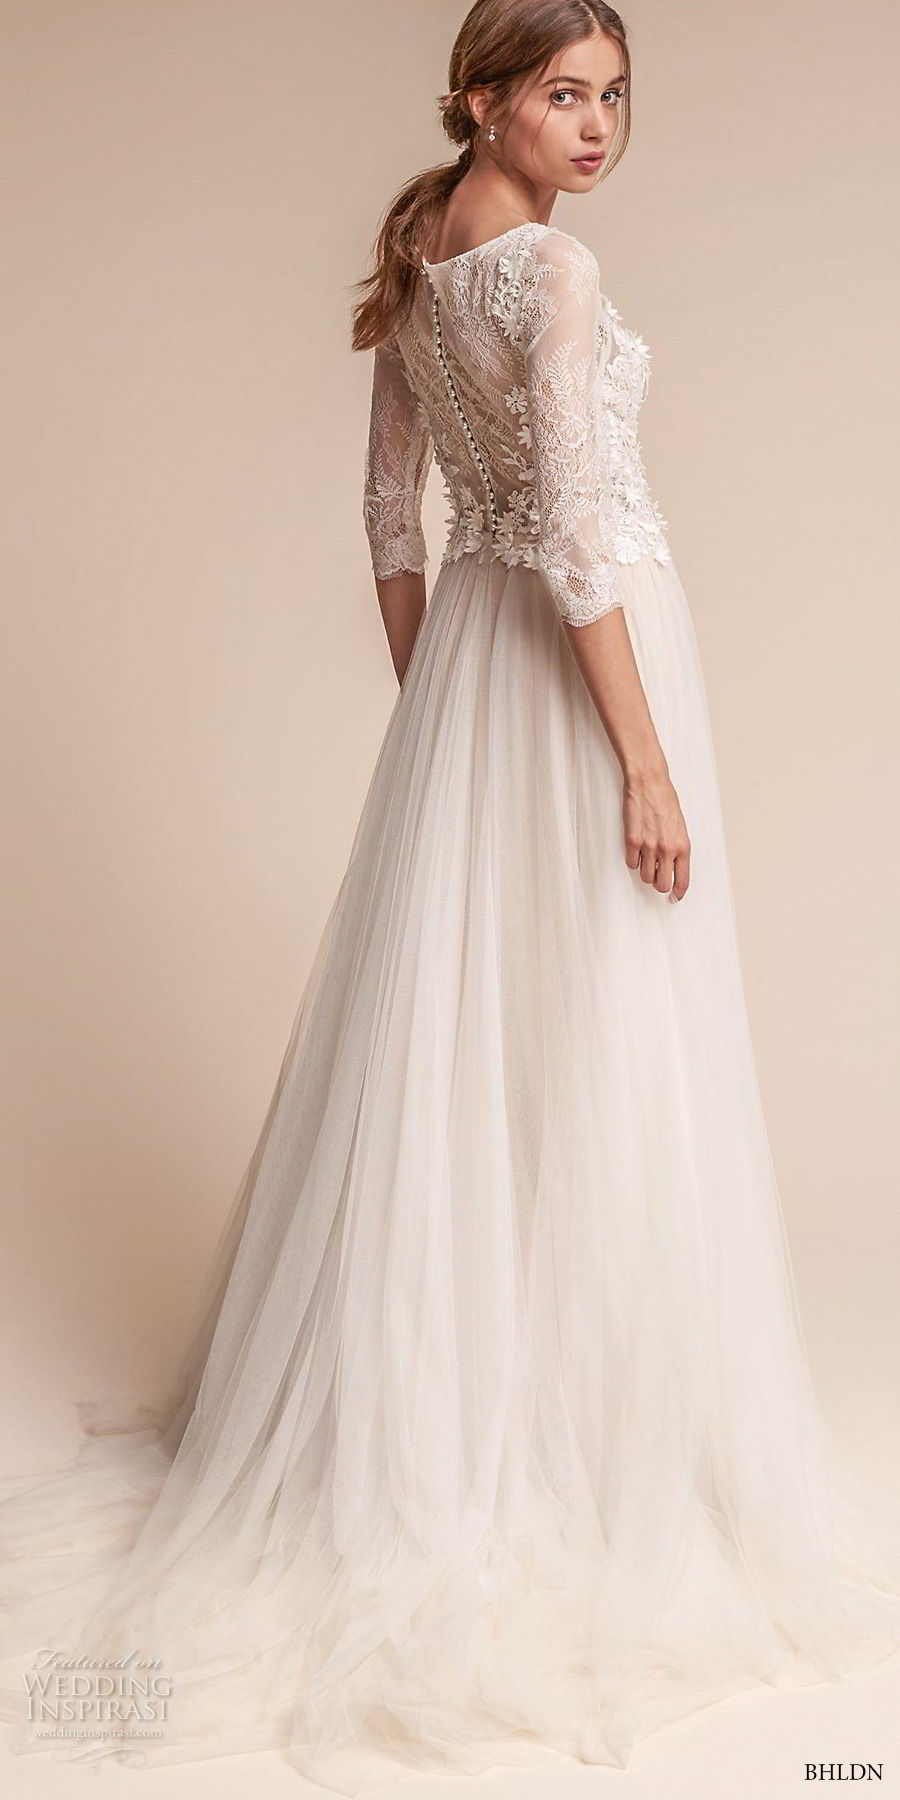 bhldn fall 2017  americana bridal three quarter sleeves bateau neck heavily embellished bodice tulle skirt romantic soft a  lne wedding dress covered lace back sweep train (amelia) bv